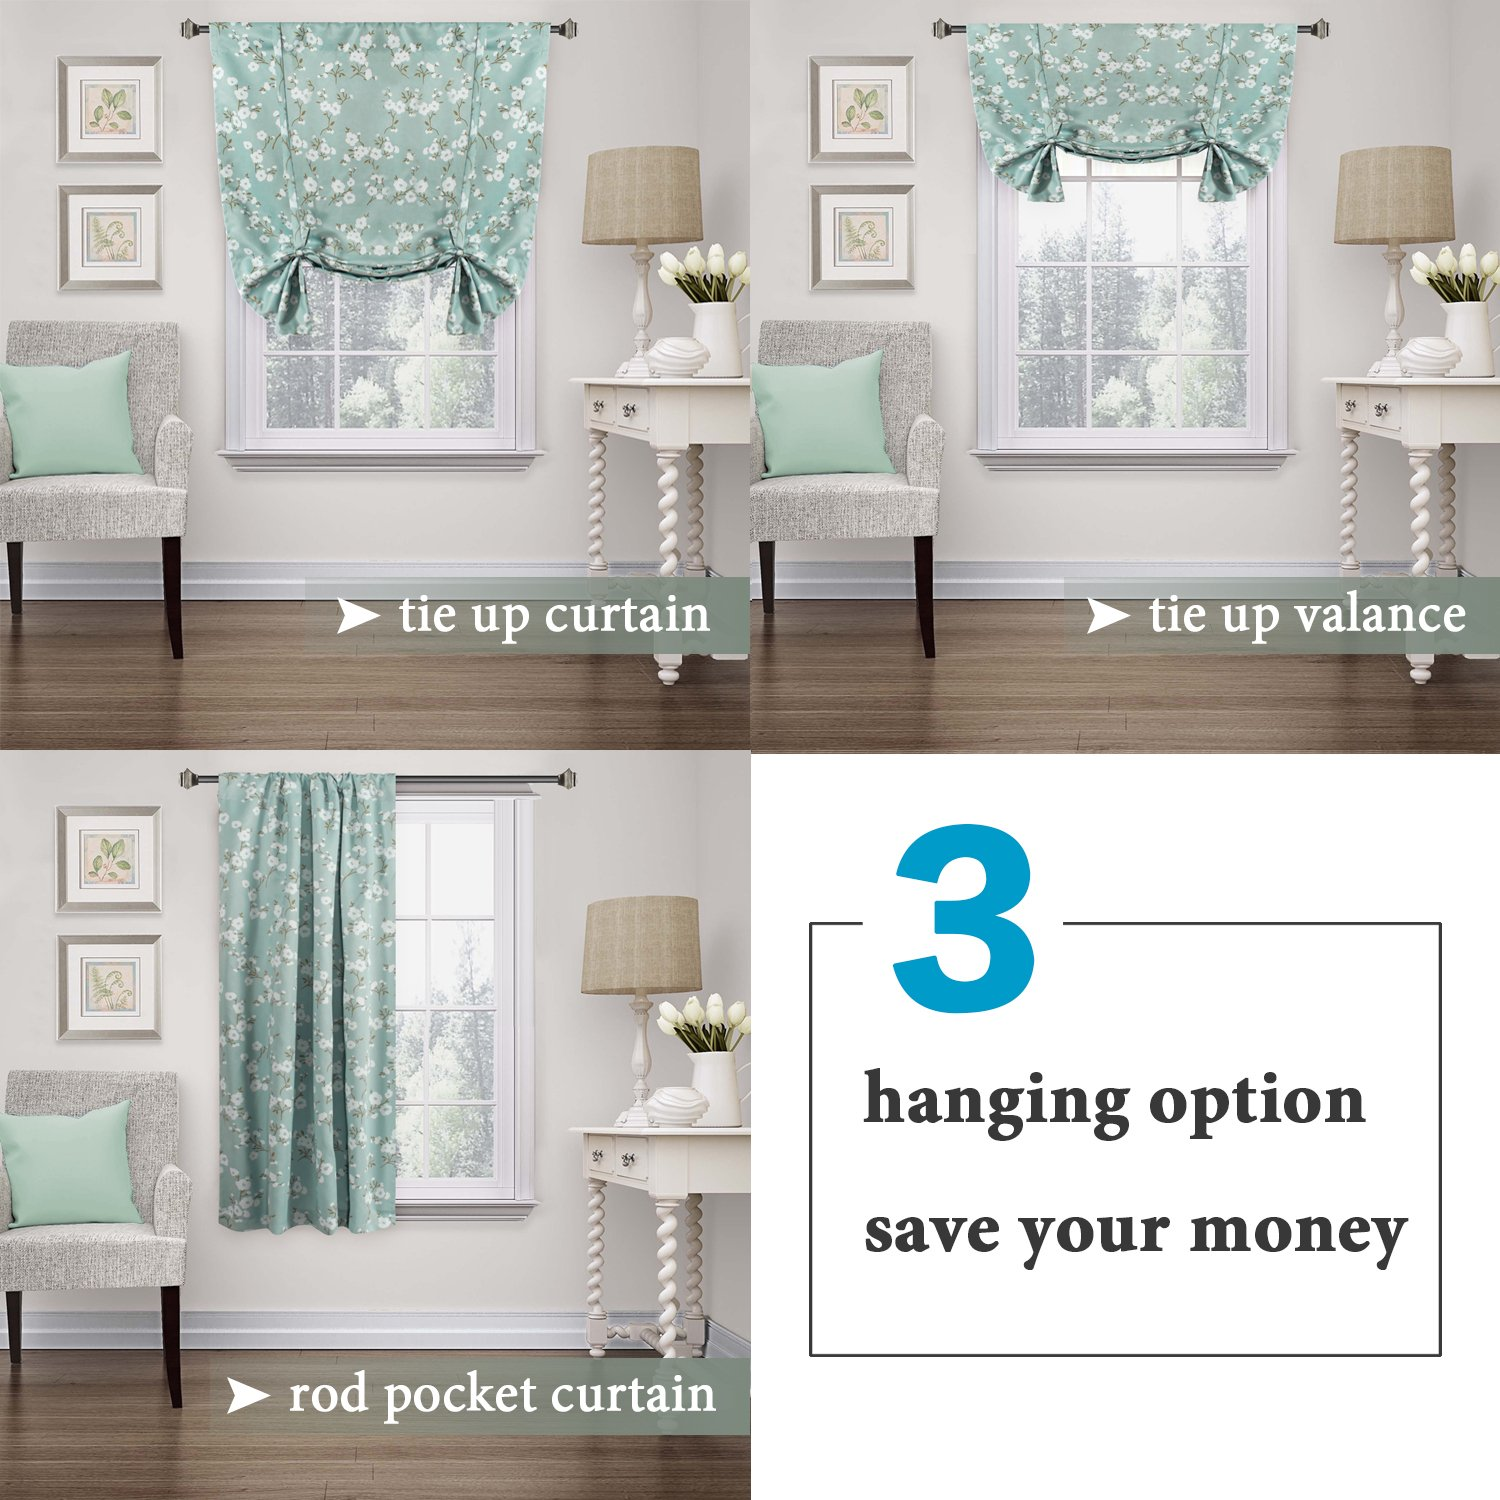 H.VERSAILTEX Traditional Window Drapes Aqua Floral Country Style Pattern Thermal Insulated Blackout Curtain for Living Room Rod Pocket Tie Up Shade Window Treatment Panel, W42 x L63 Inch by H.VERSAILTEX (Image #3)